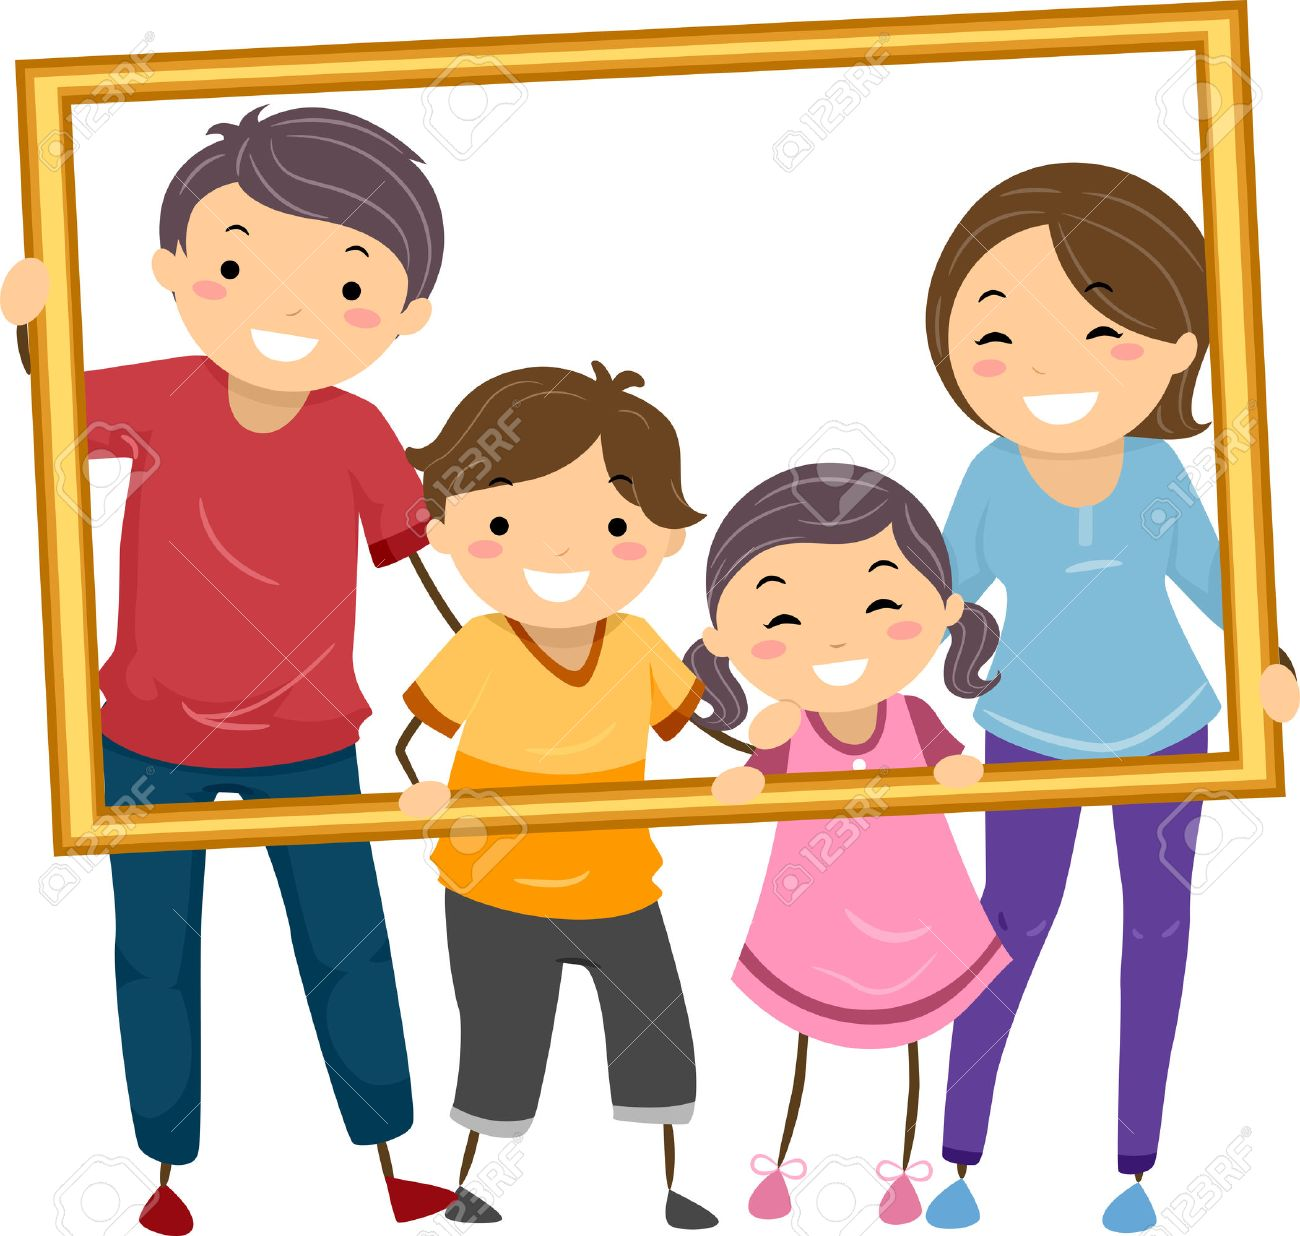 Illustration Featuring a Happy Family Holding a Hollow Frame - 31689328